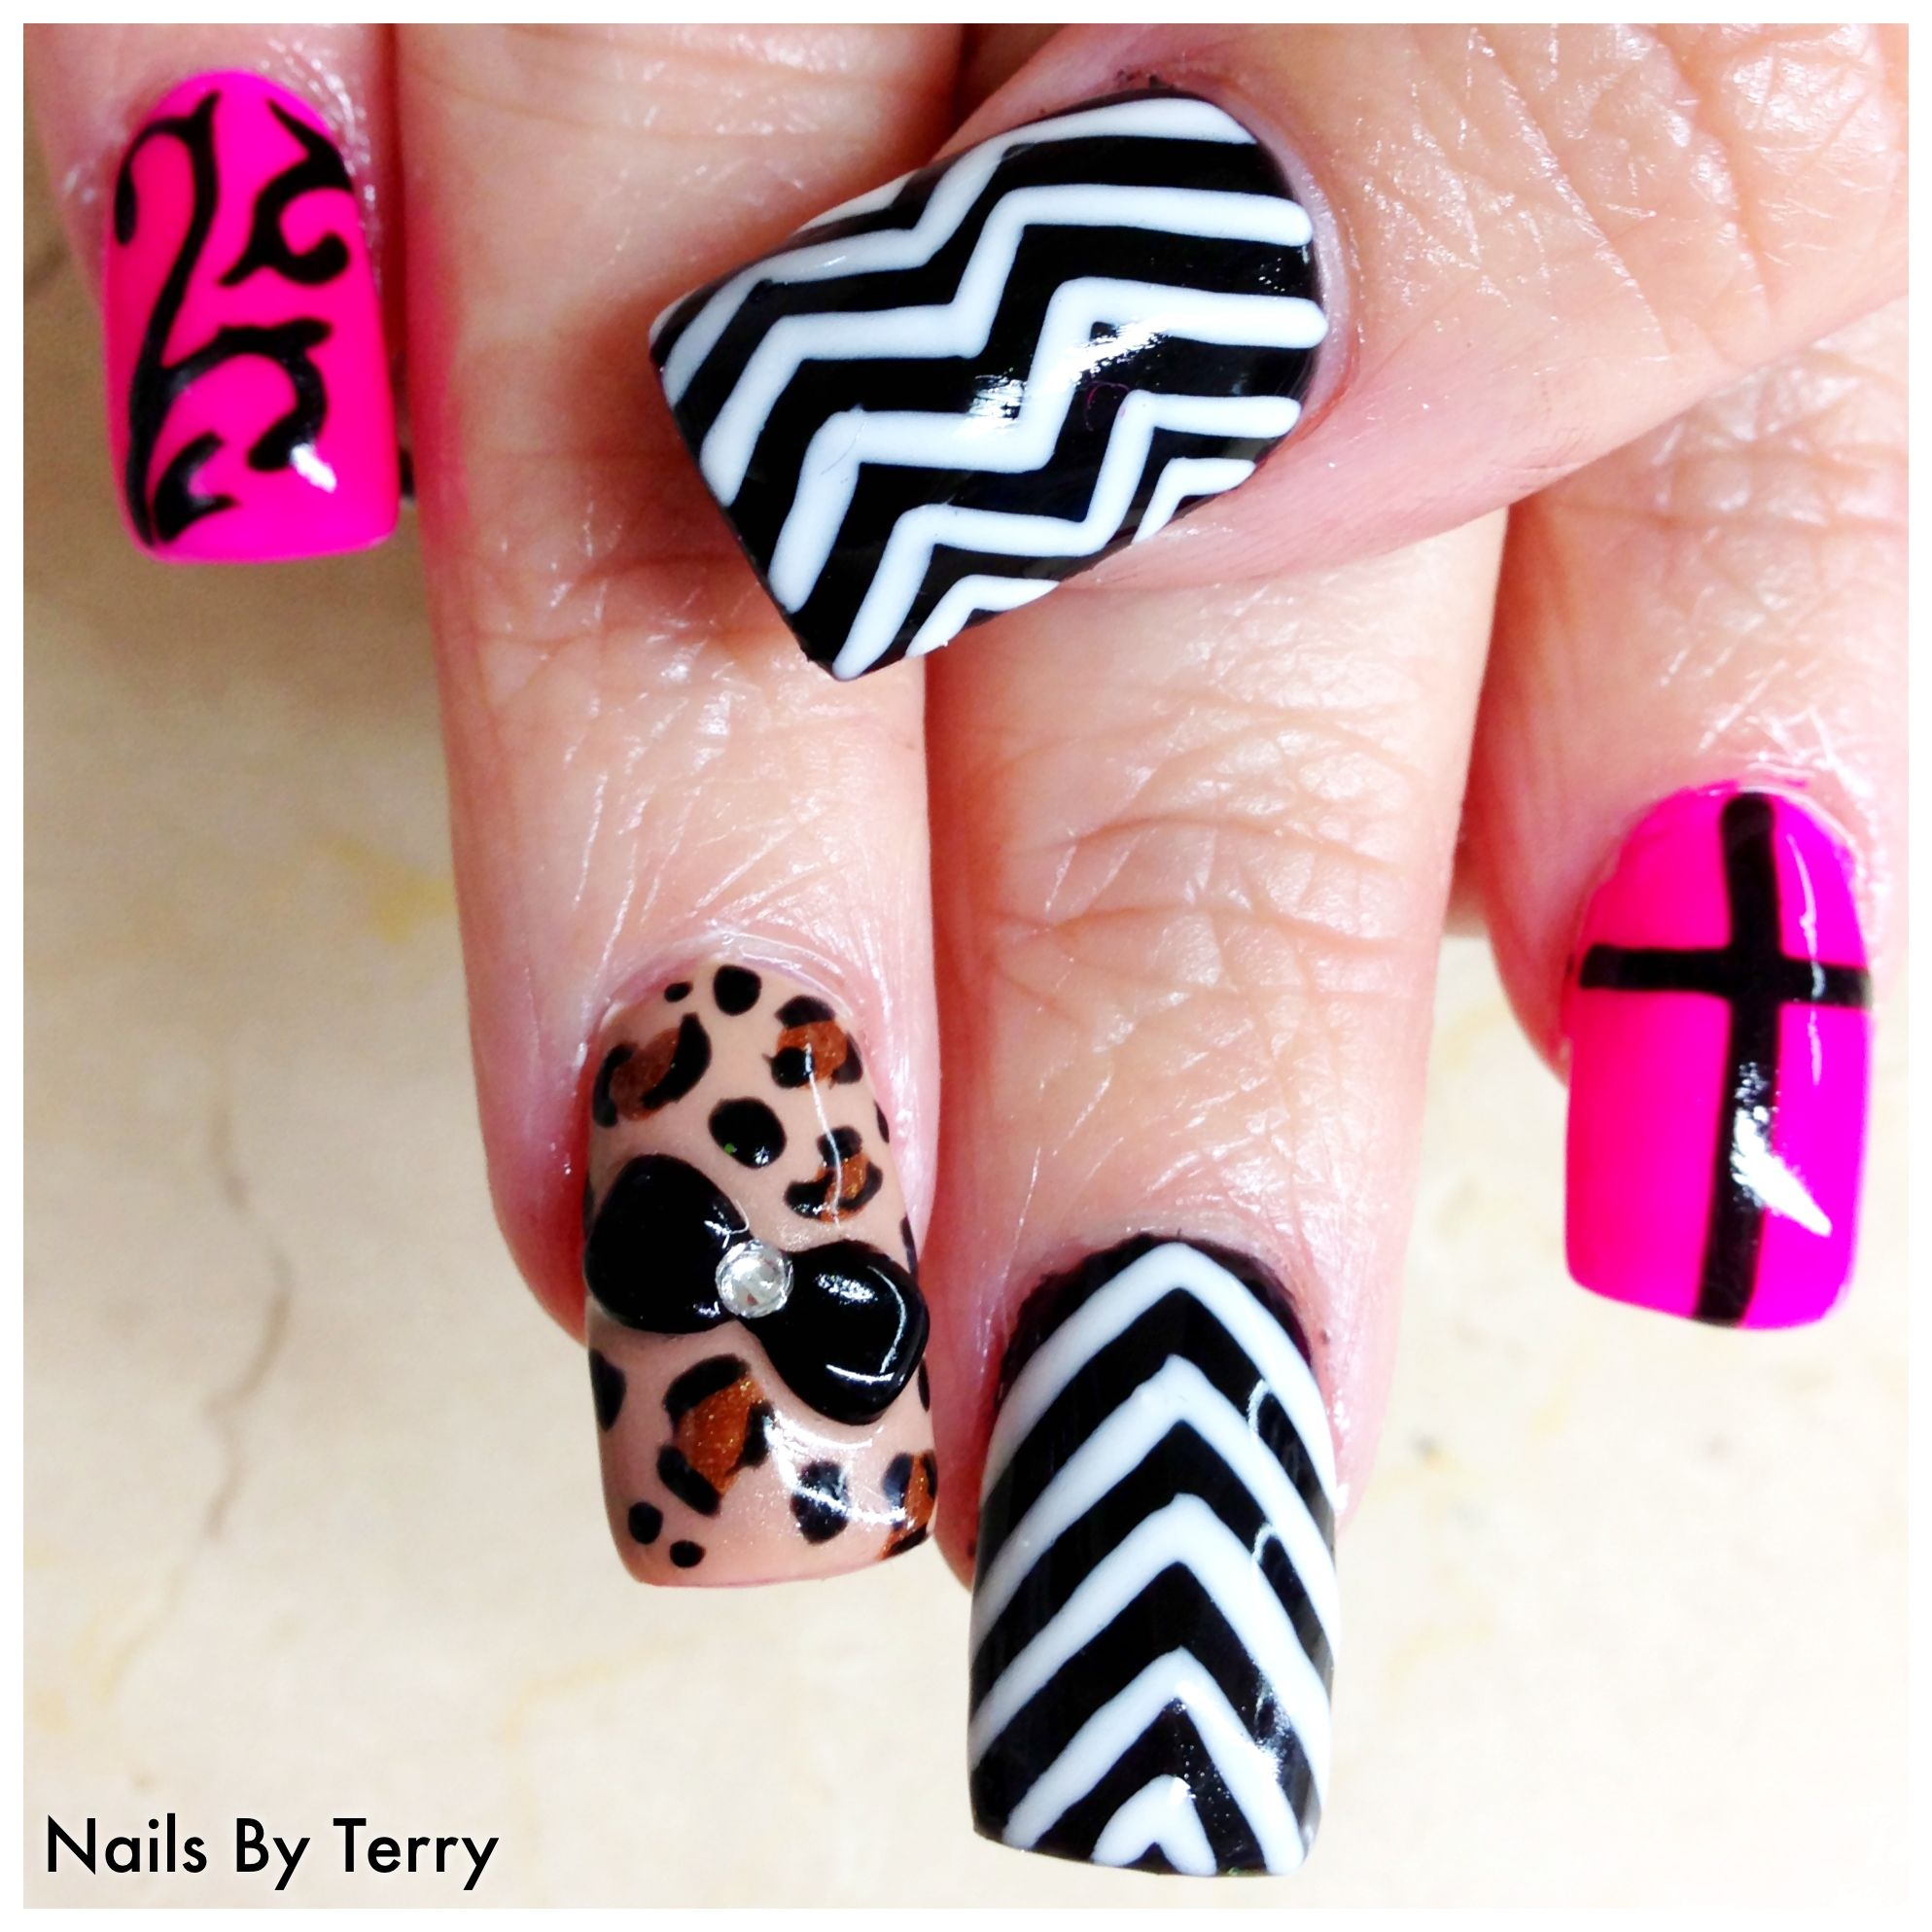 mix gel design with 3- acrylic